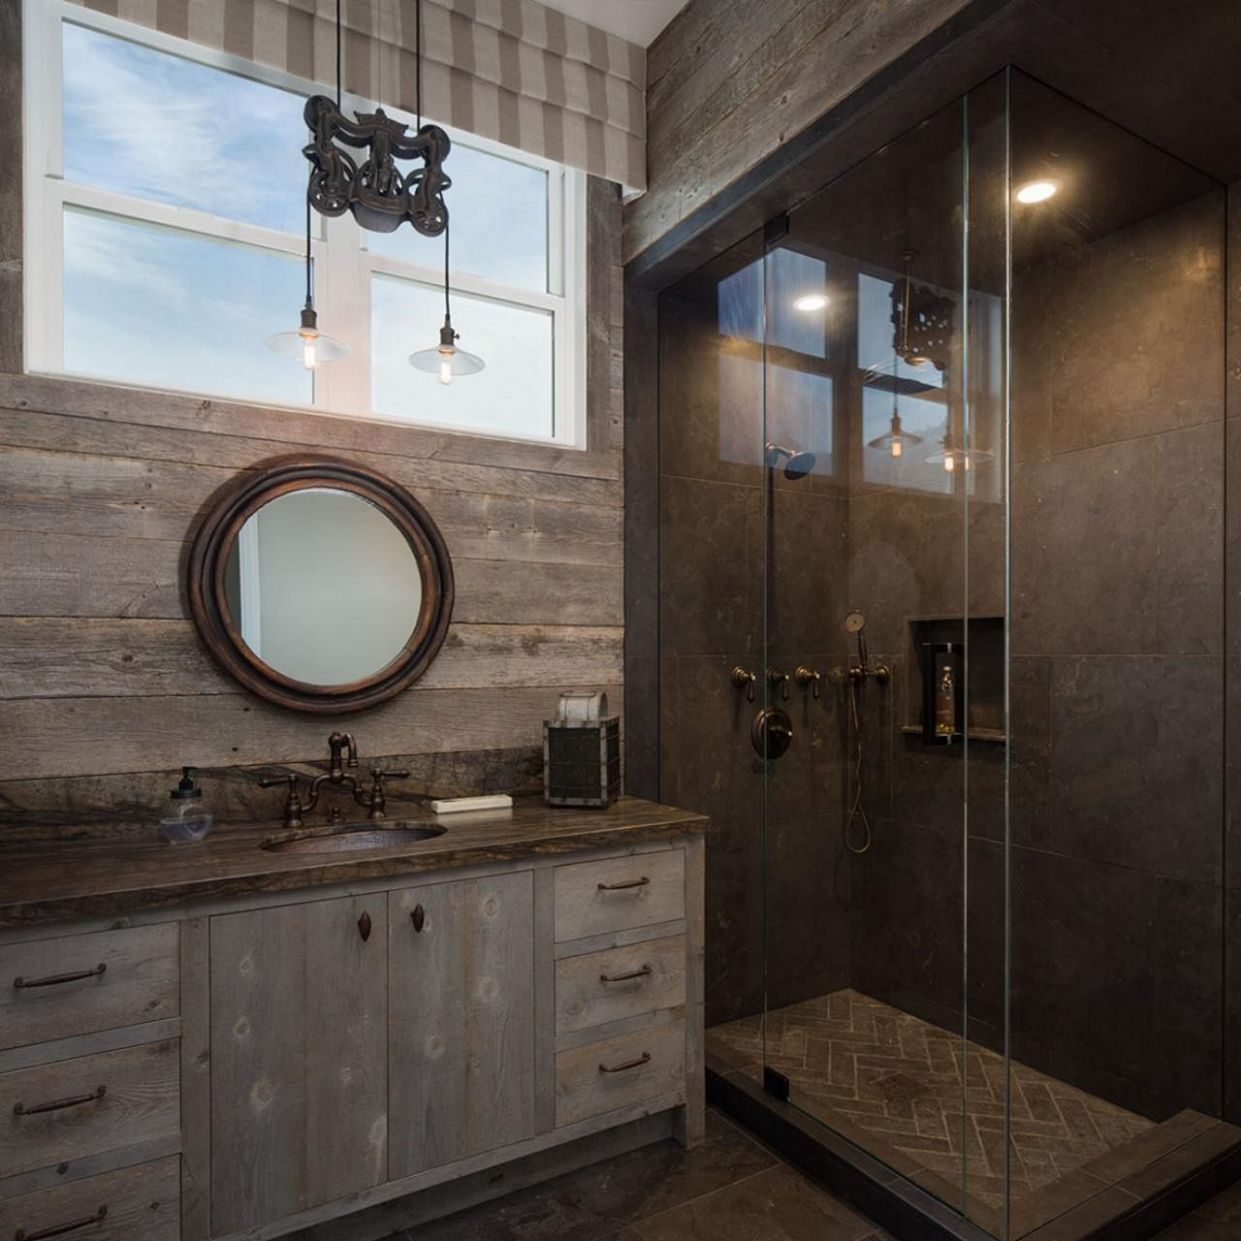 10 Beautiful Rustic Bathroom Ideas With Wood Shower Design - DEXORATE